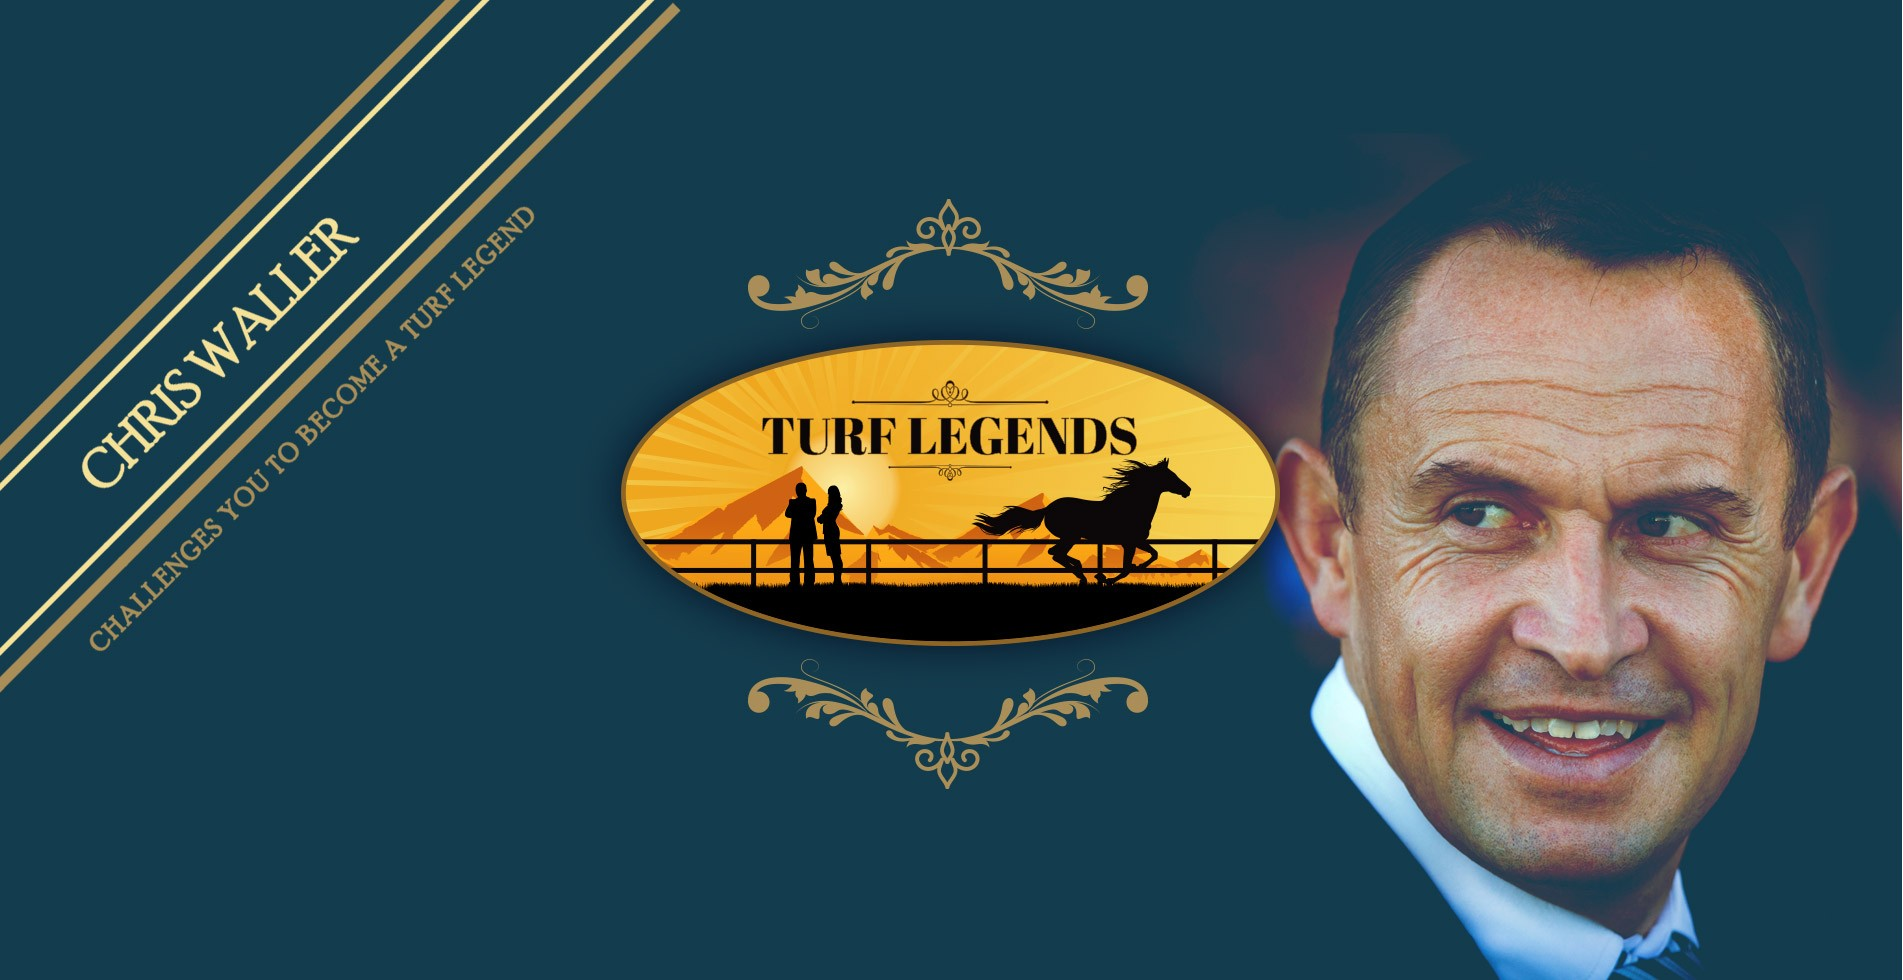 Chris Waller Challenges you to become a Turf Legend